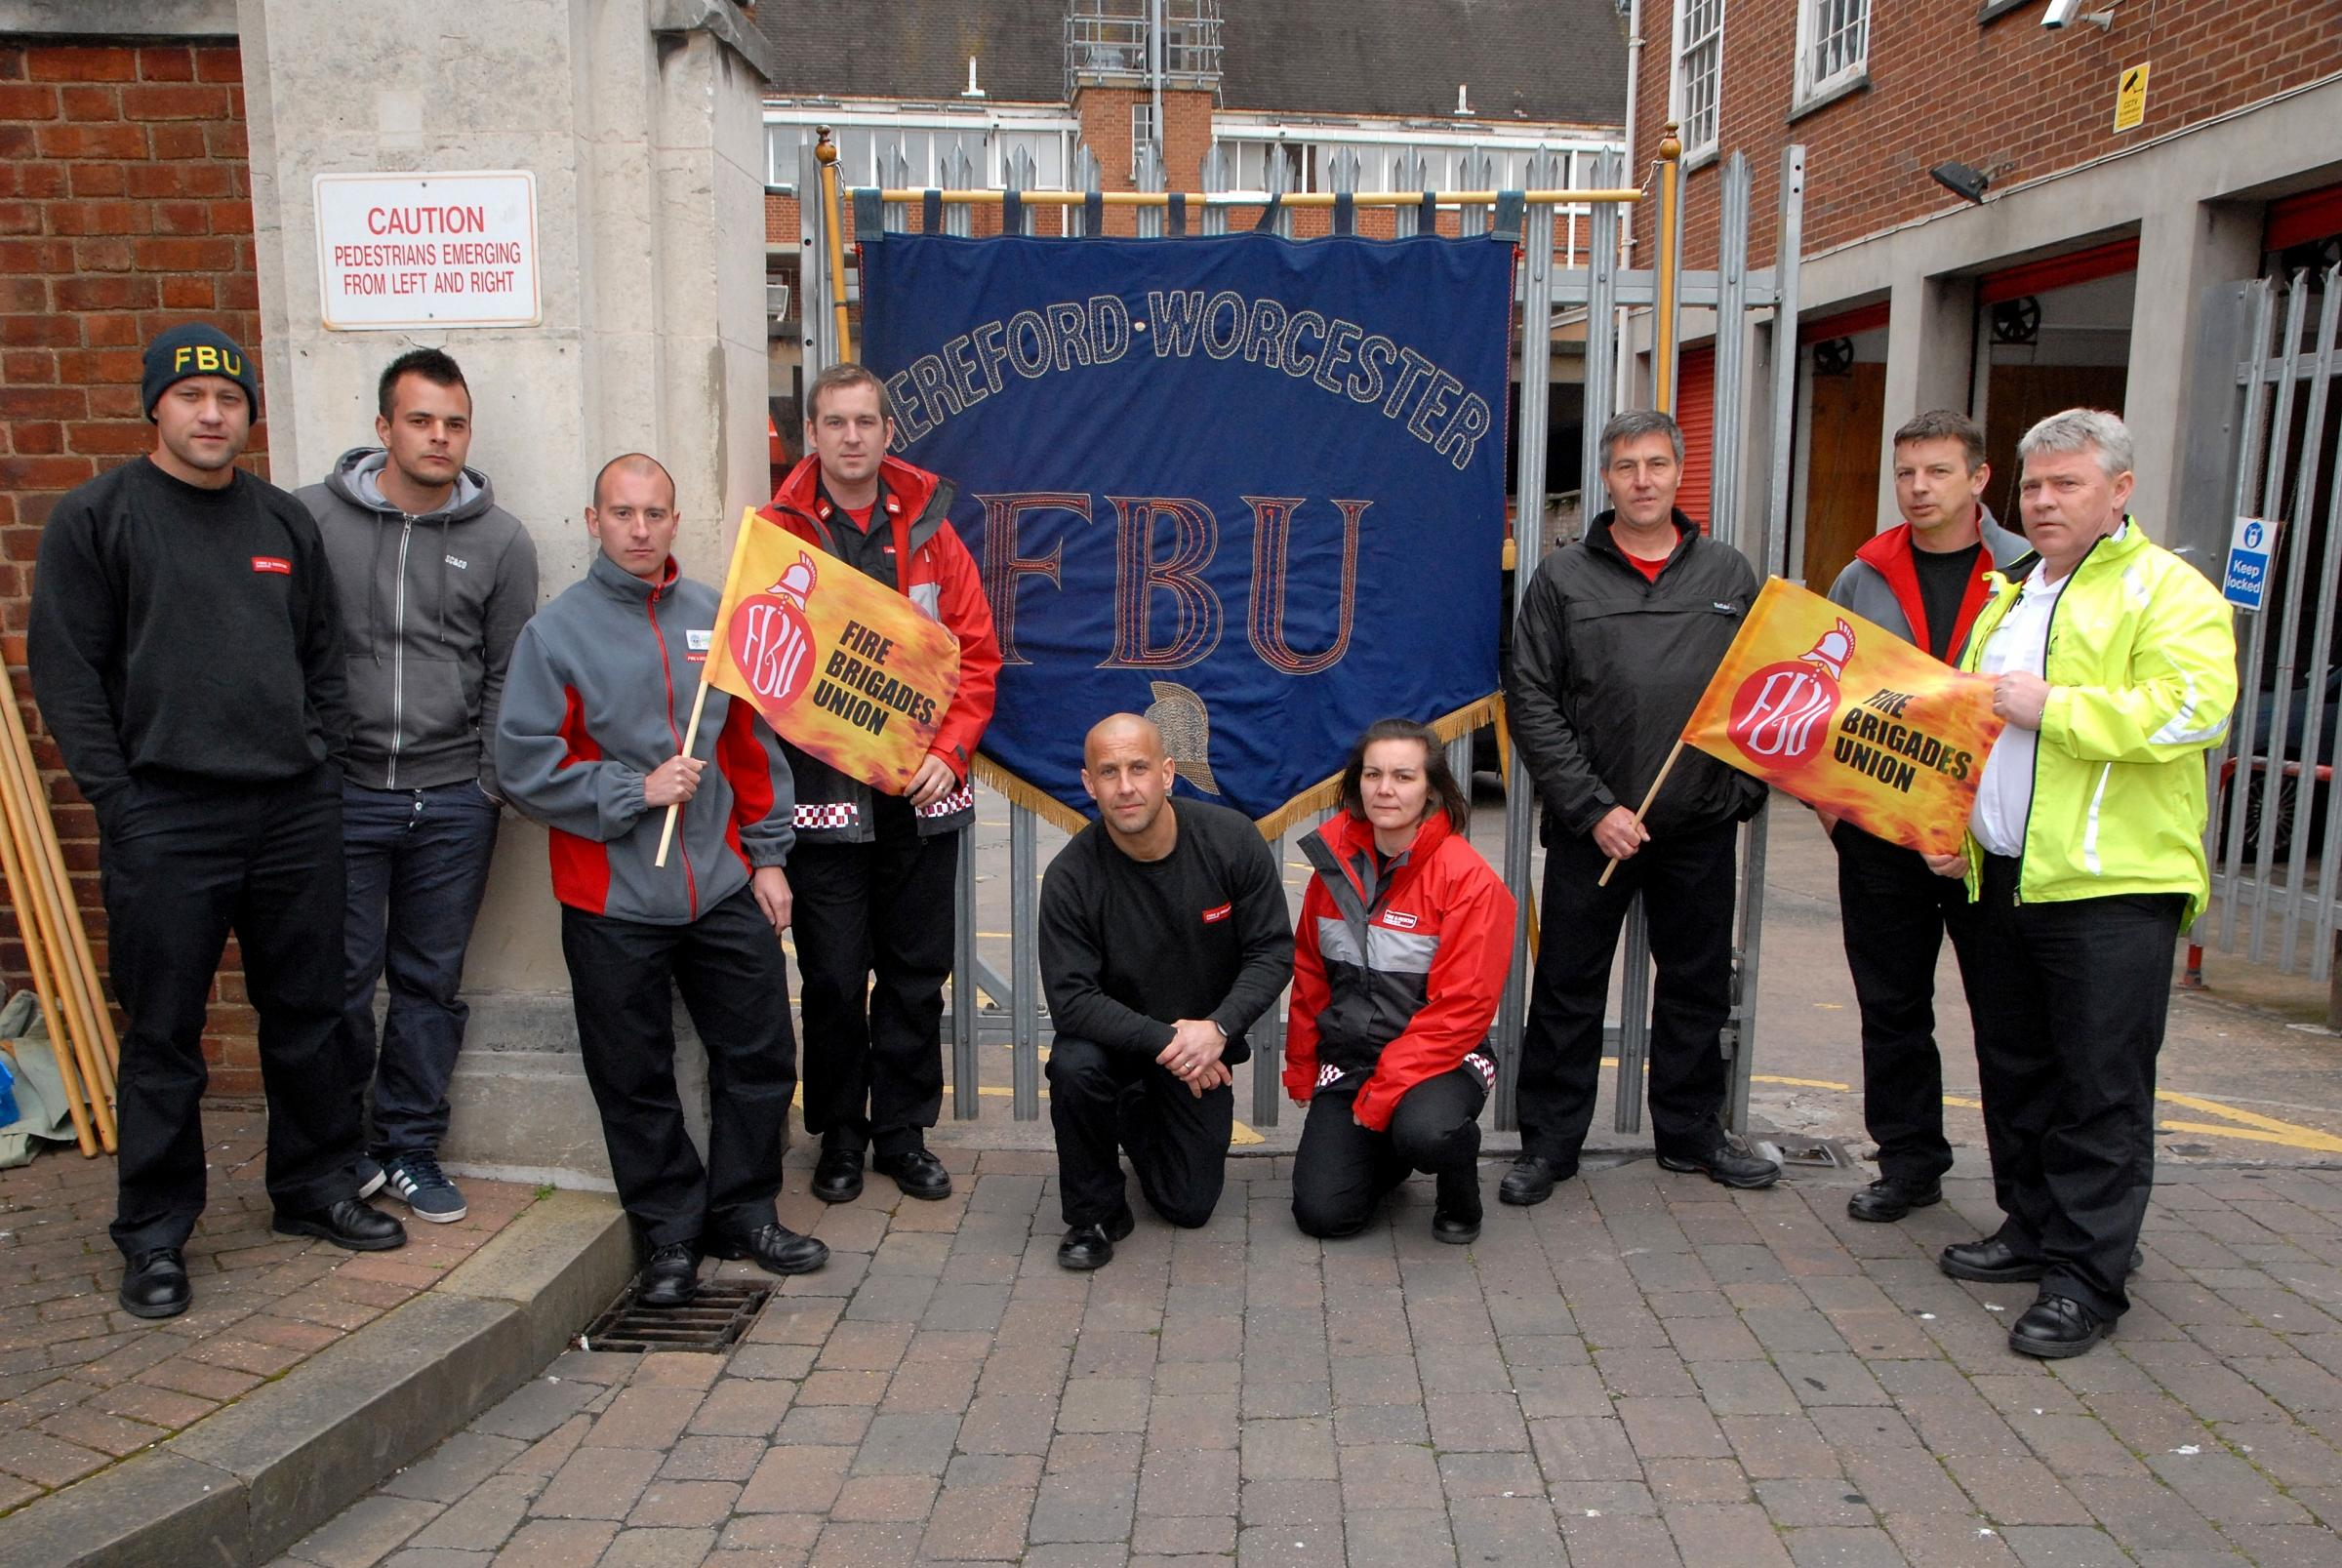 Strike a success, says fire brigade union